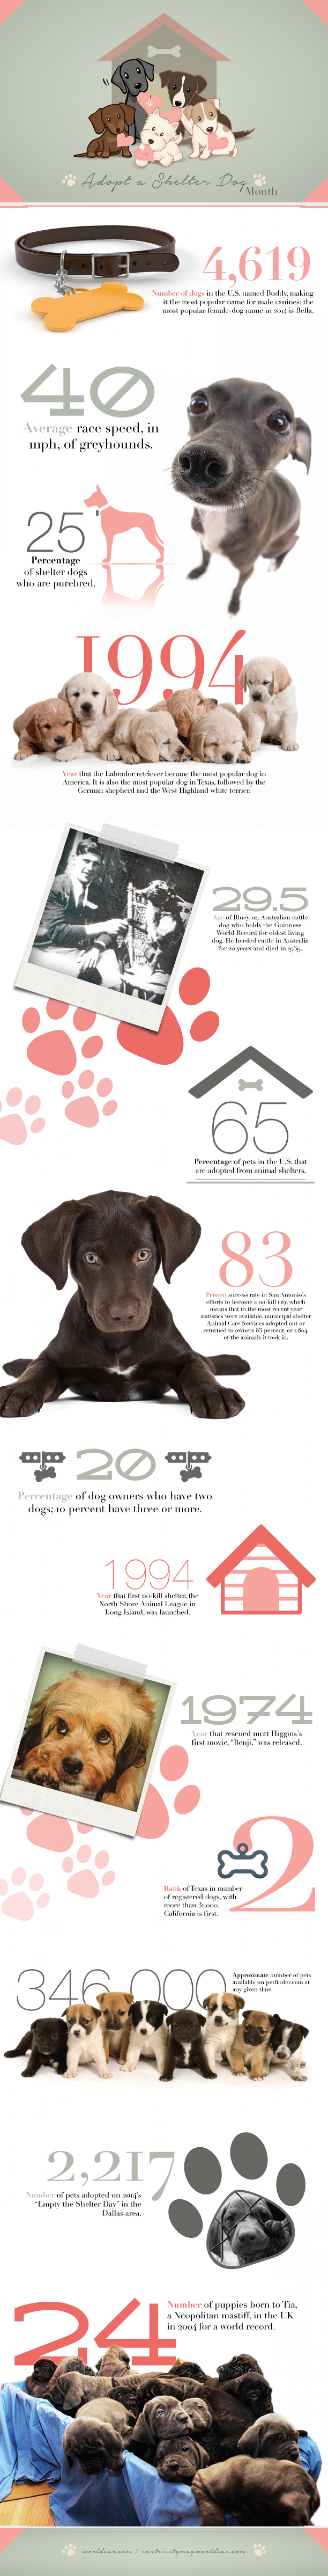 Adopt a Shelter Dog! Infographic